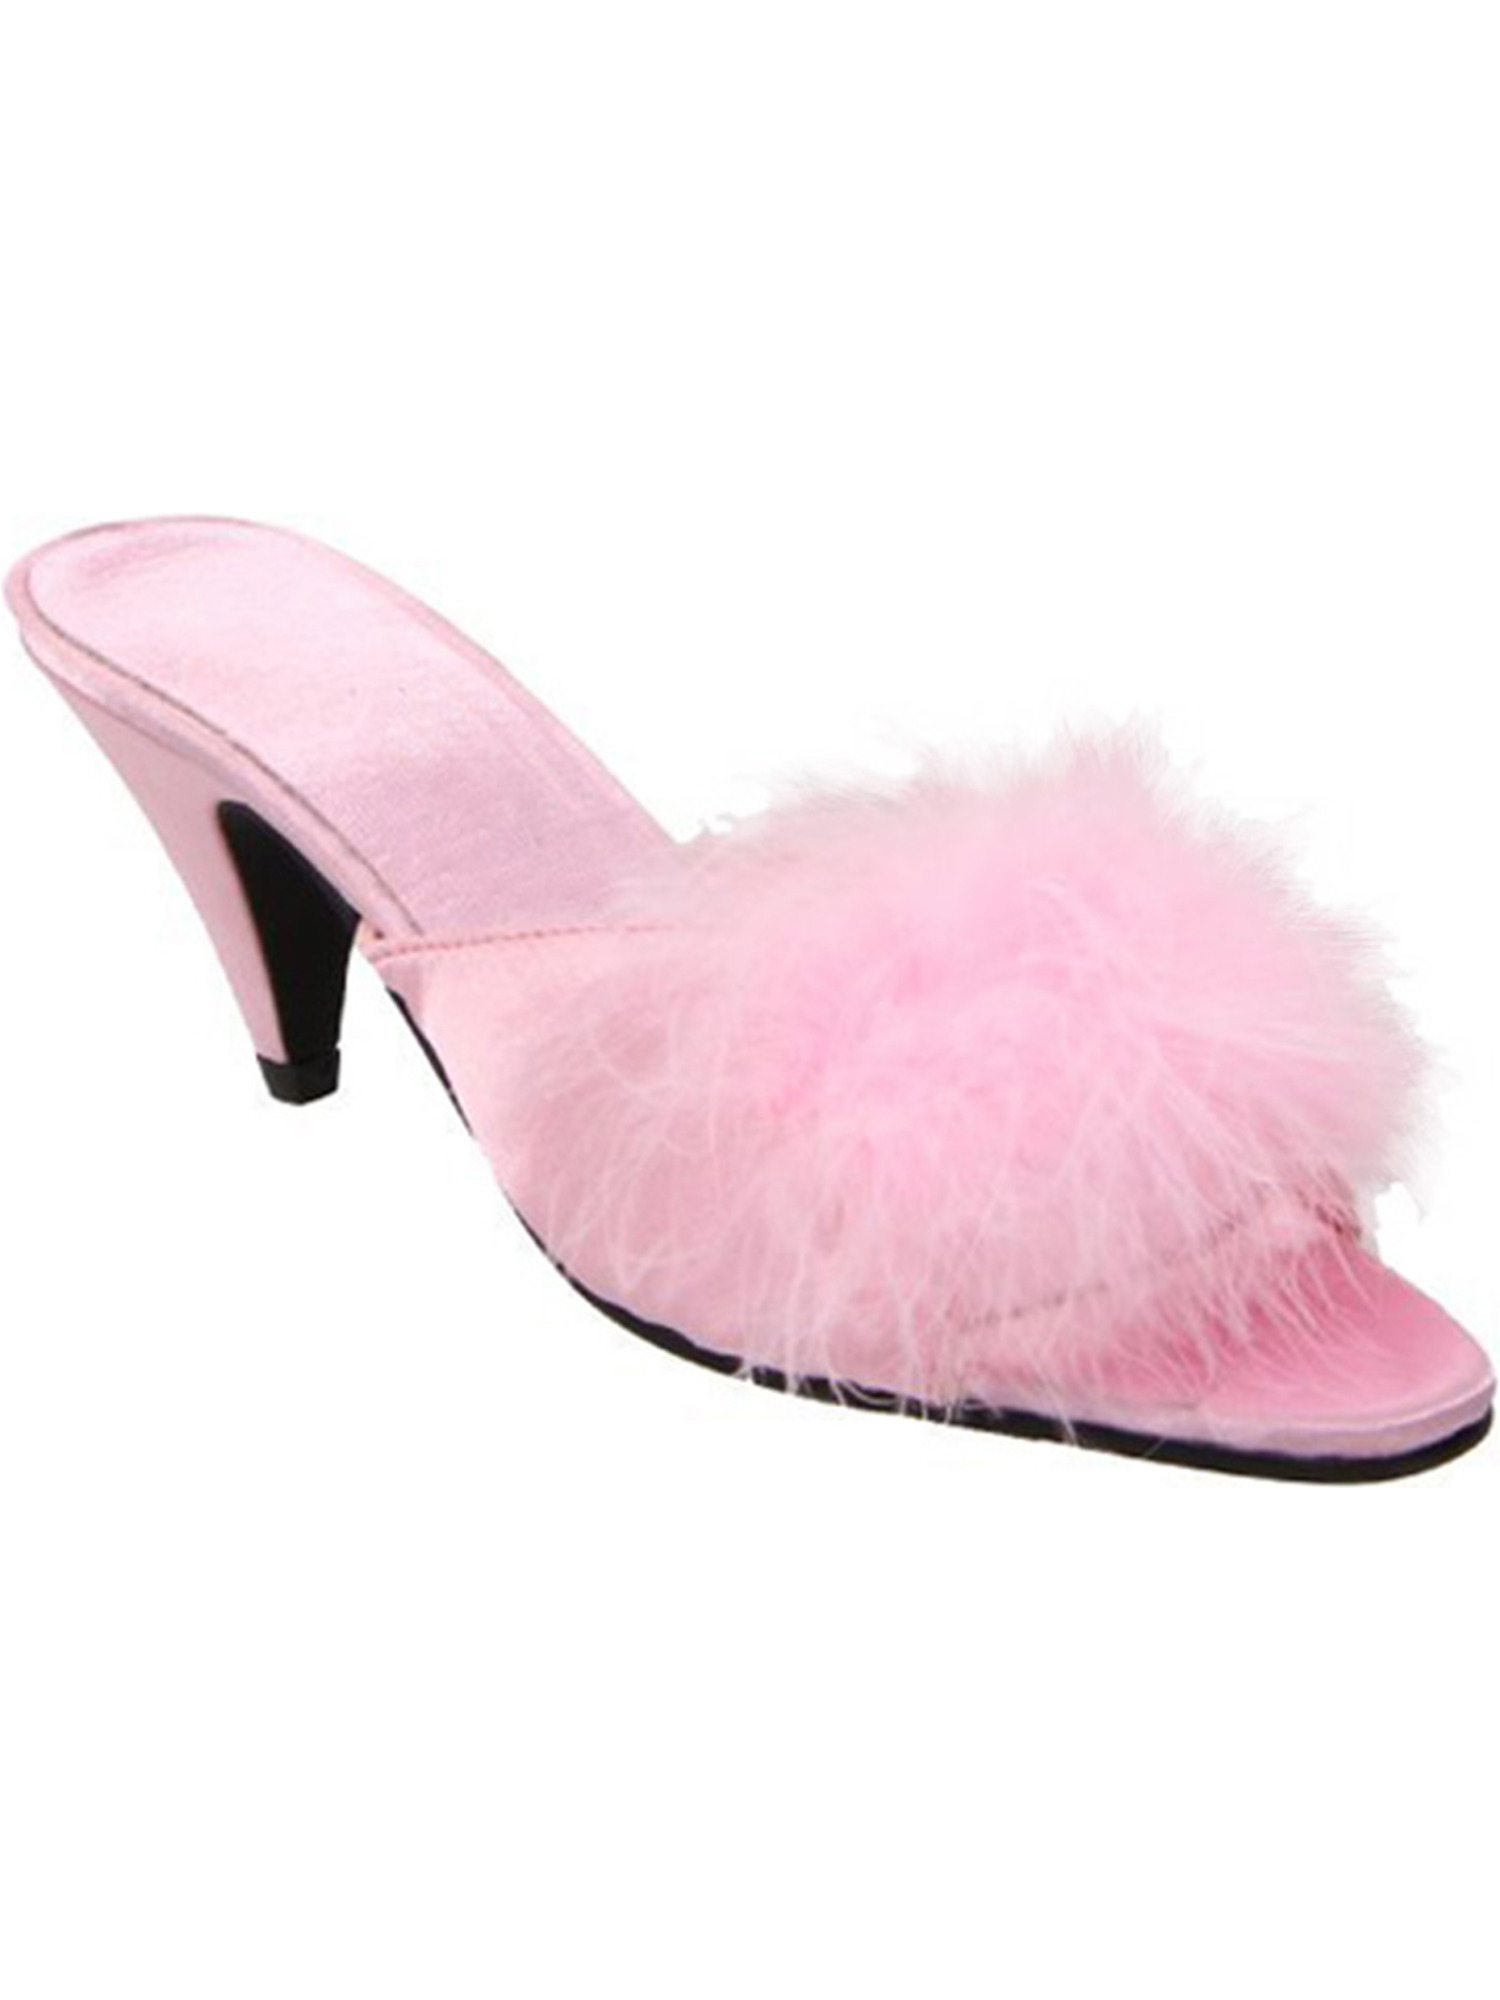 Womens Lingerie Slippers Faux Fur Strap 2 1/2 Inch Heel Satin Maribou Slides